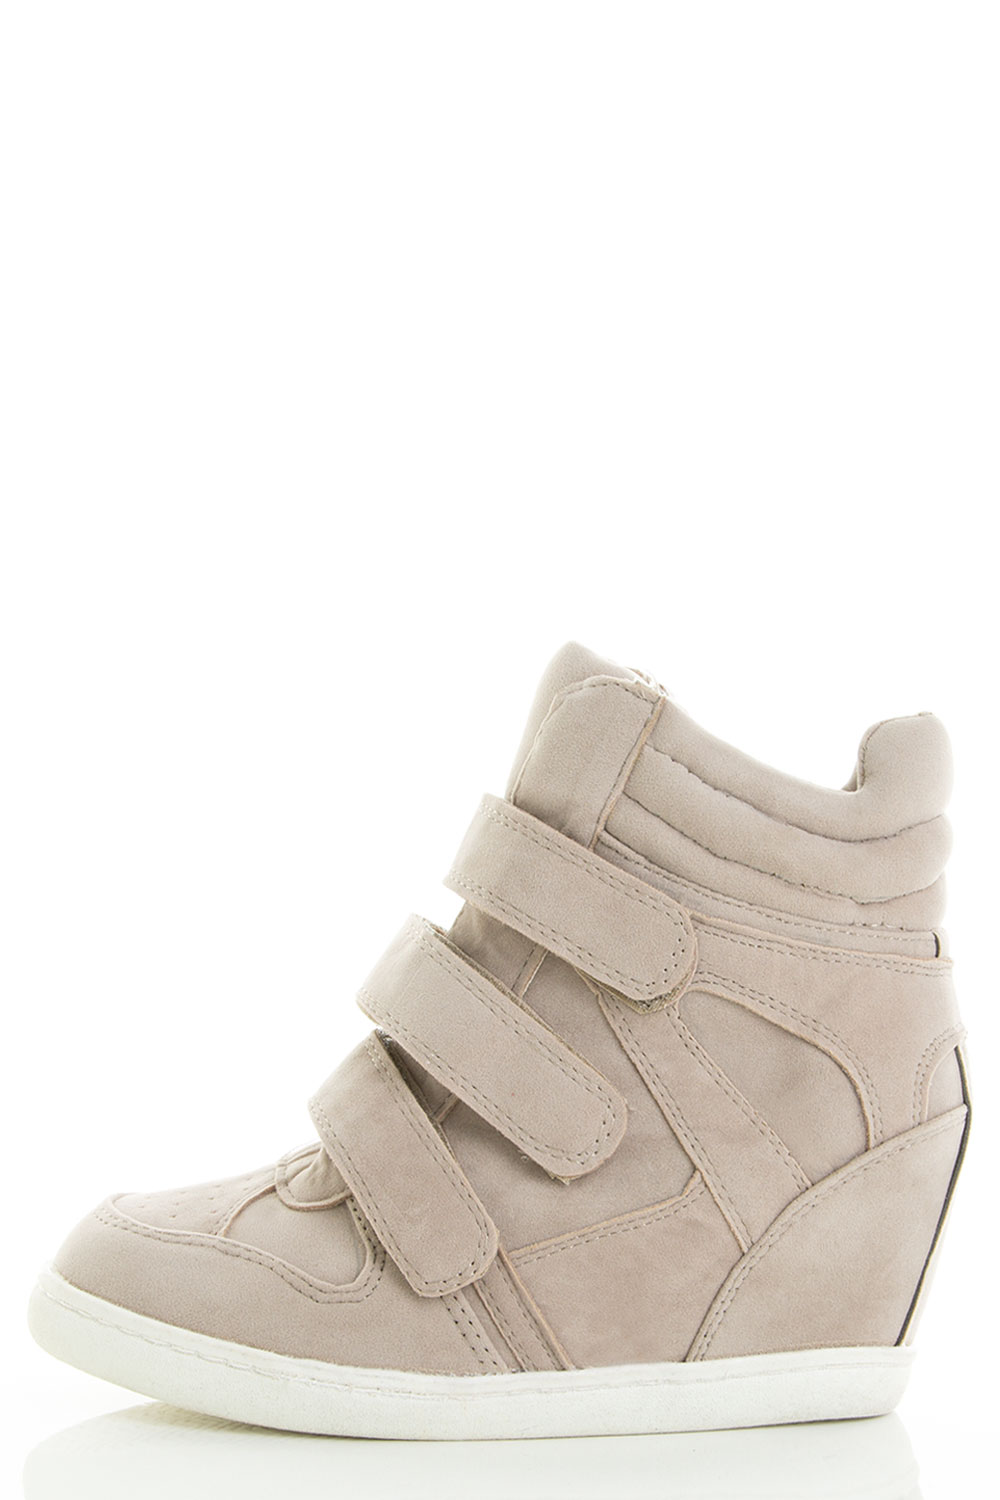 Velcro Strap Round Toe Hidden Wedge Ankle Booties